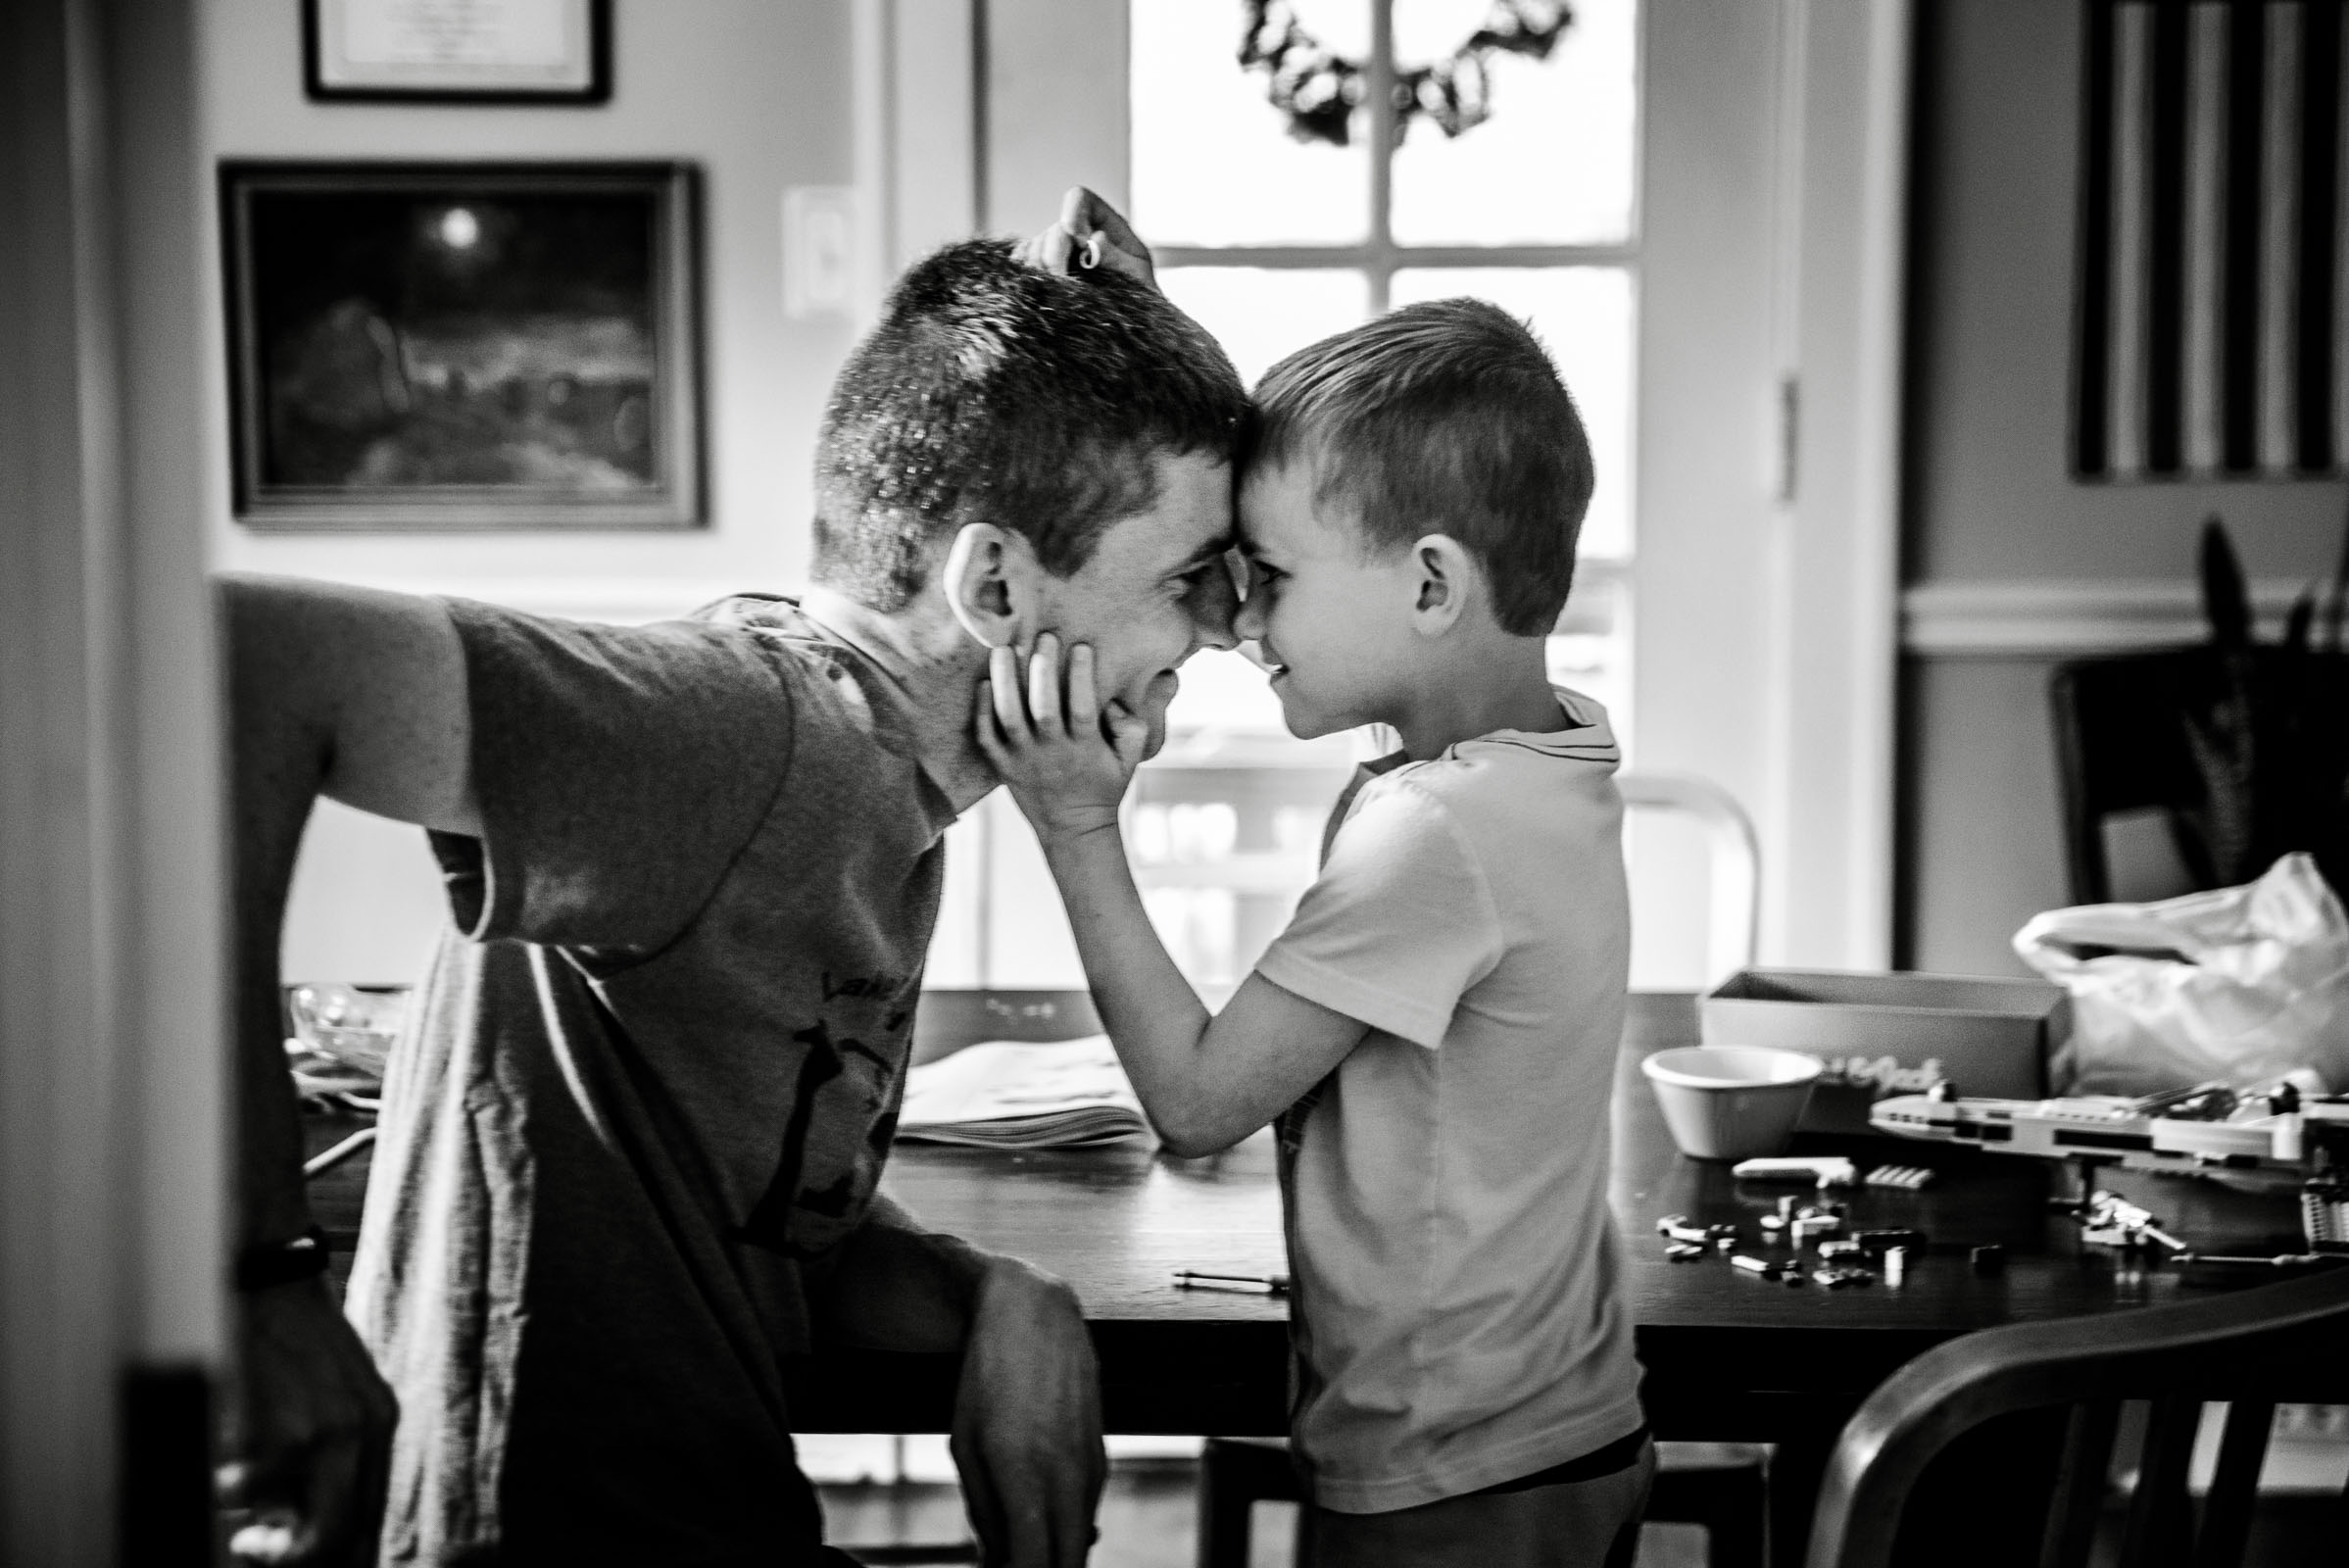 boy and father touching noses, out of focus, imperfect